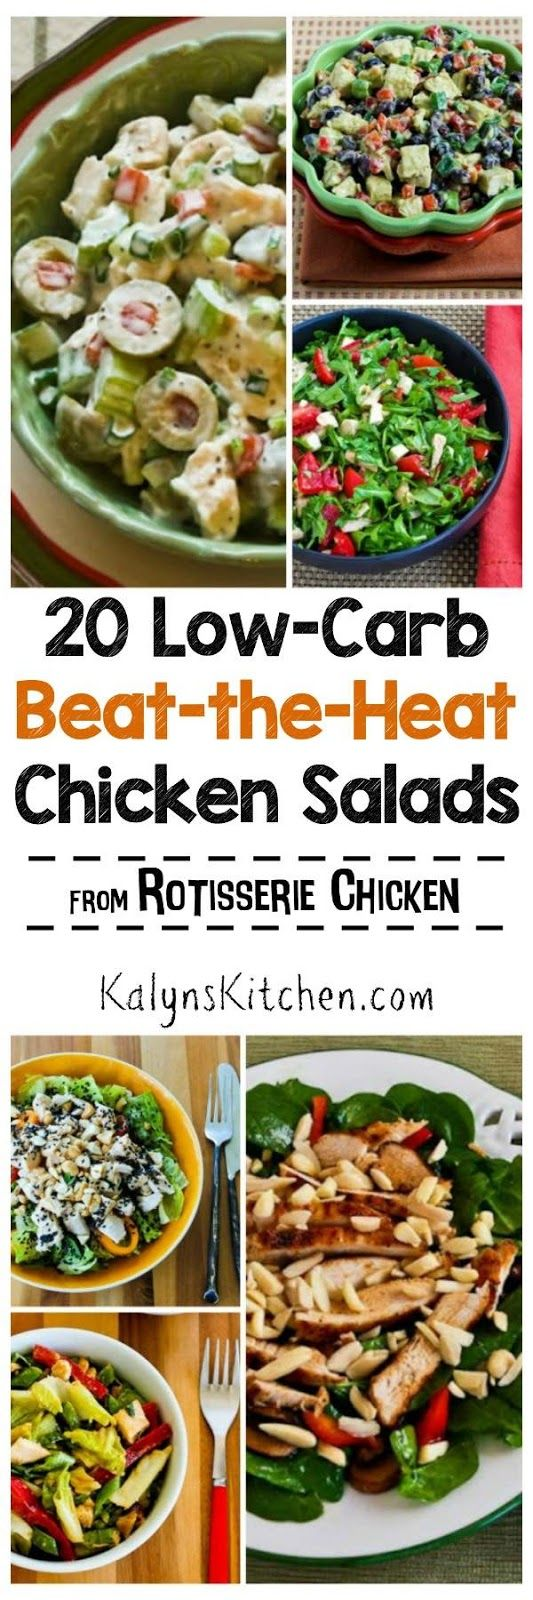 Make a tasty dinner and keep the kitchen cool with these 20 Low-Carb Beat-the-Heat Chicken Salads from Rotisserie Chicken; all the salads are also gluten-free and South Beach Diet friendly. Some of these are my favorite summer salads I make every year; enjoy! [found on KalynsKitchen.com]